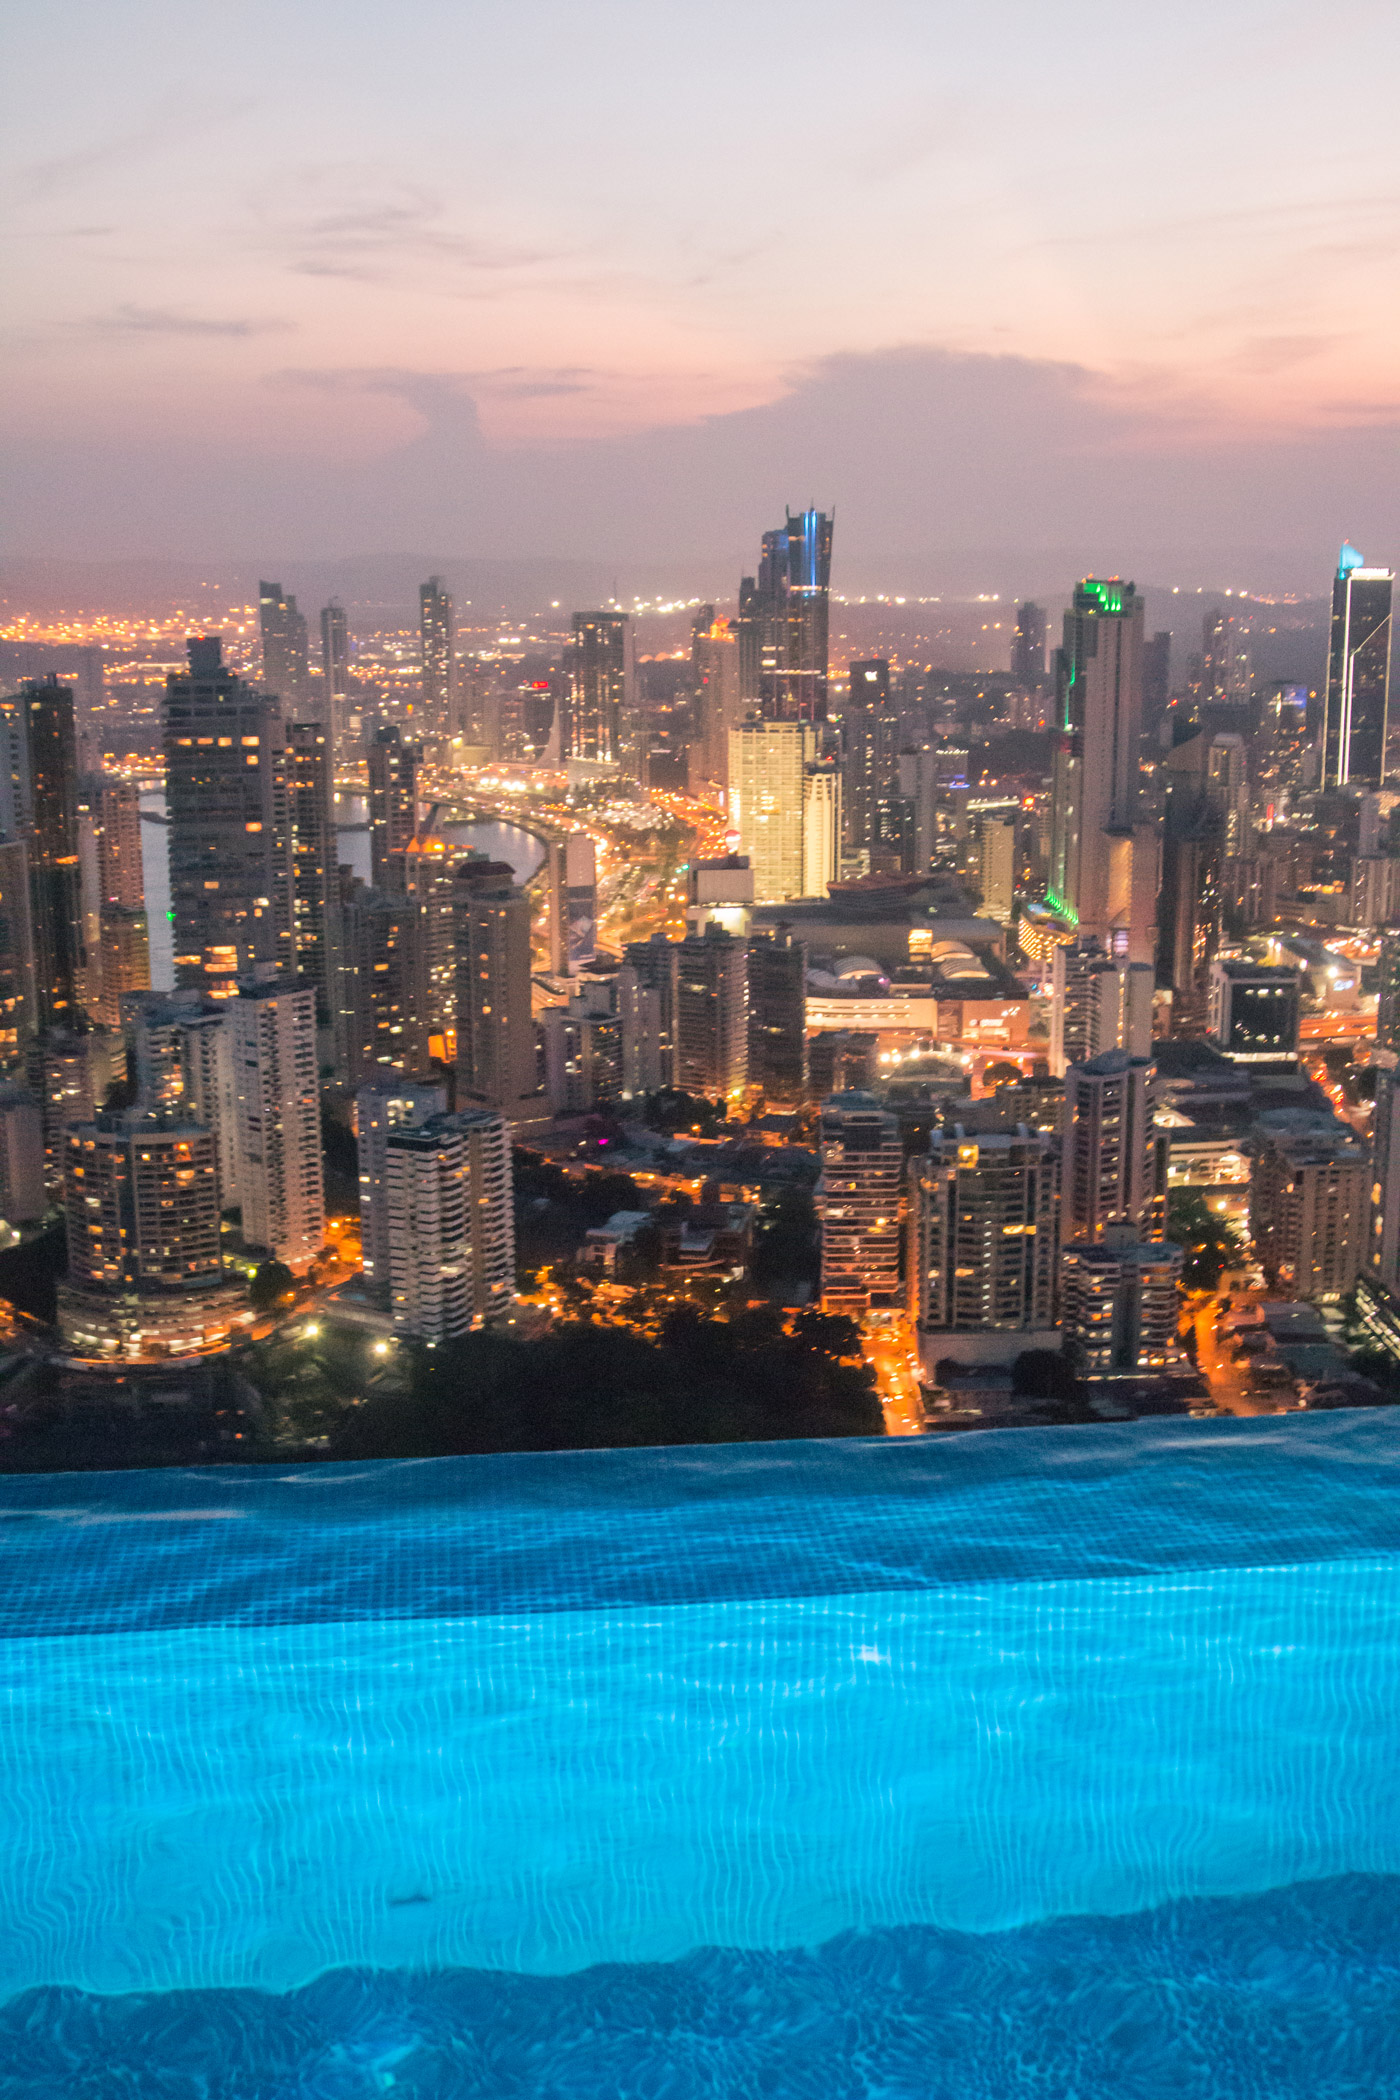 The city lights from the pool